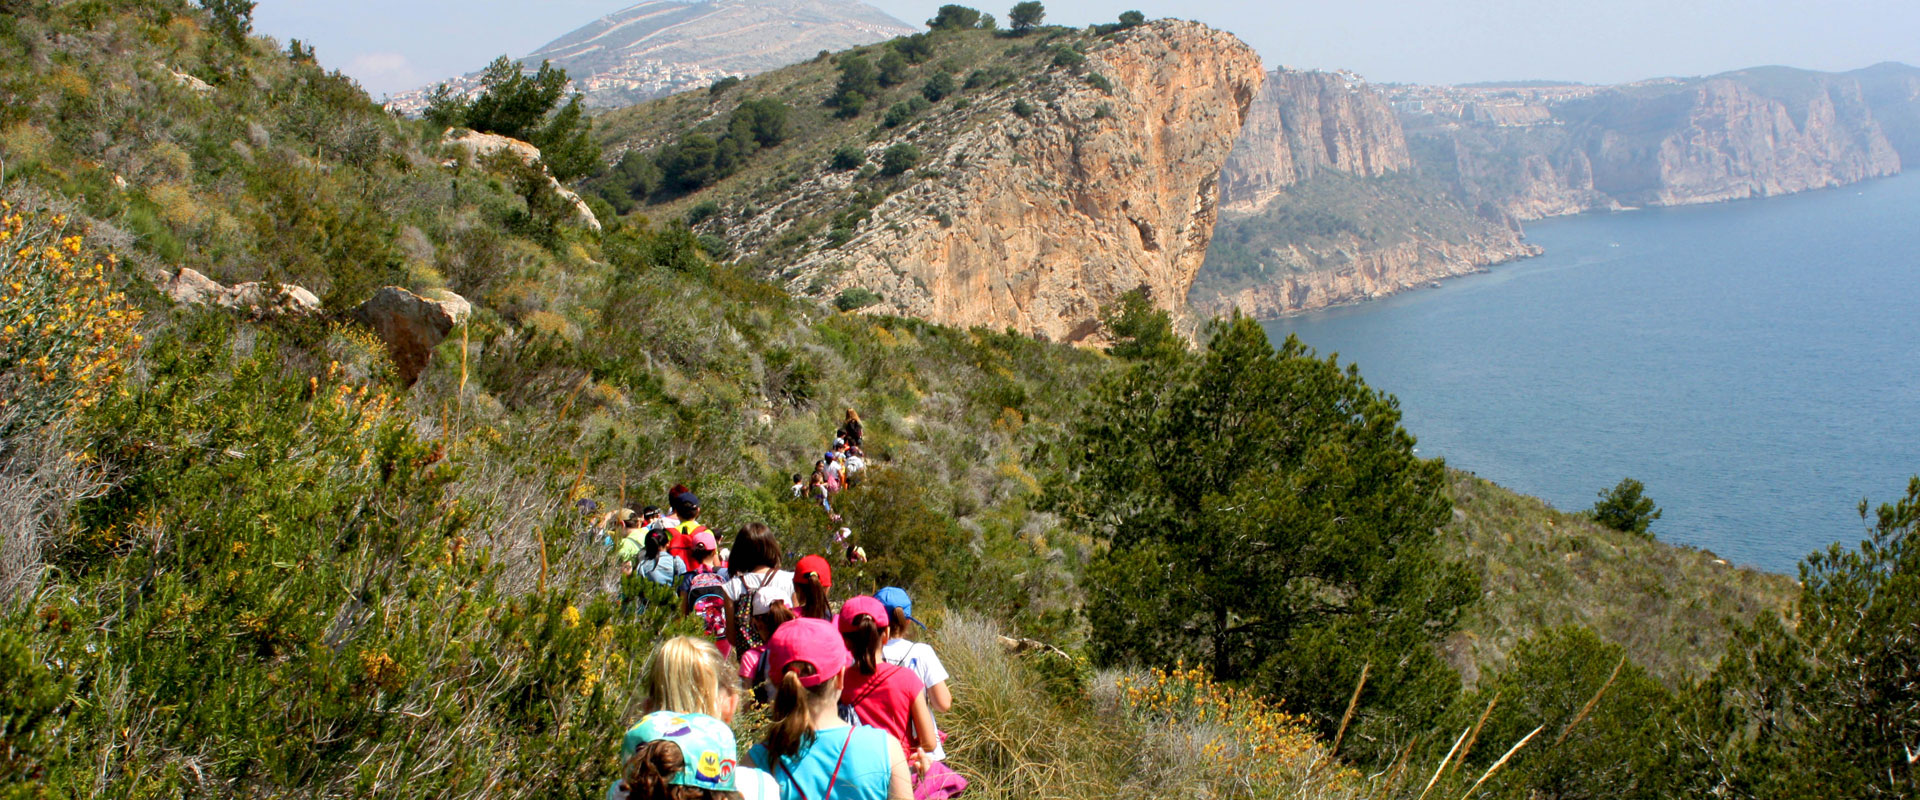 Educación ambiental. Costa norte de Alicante